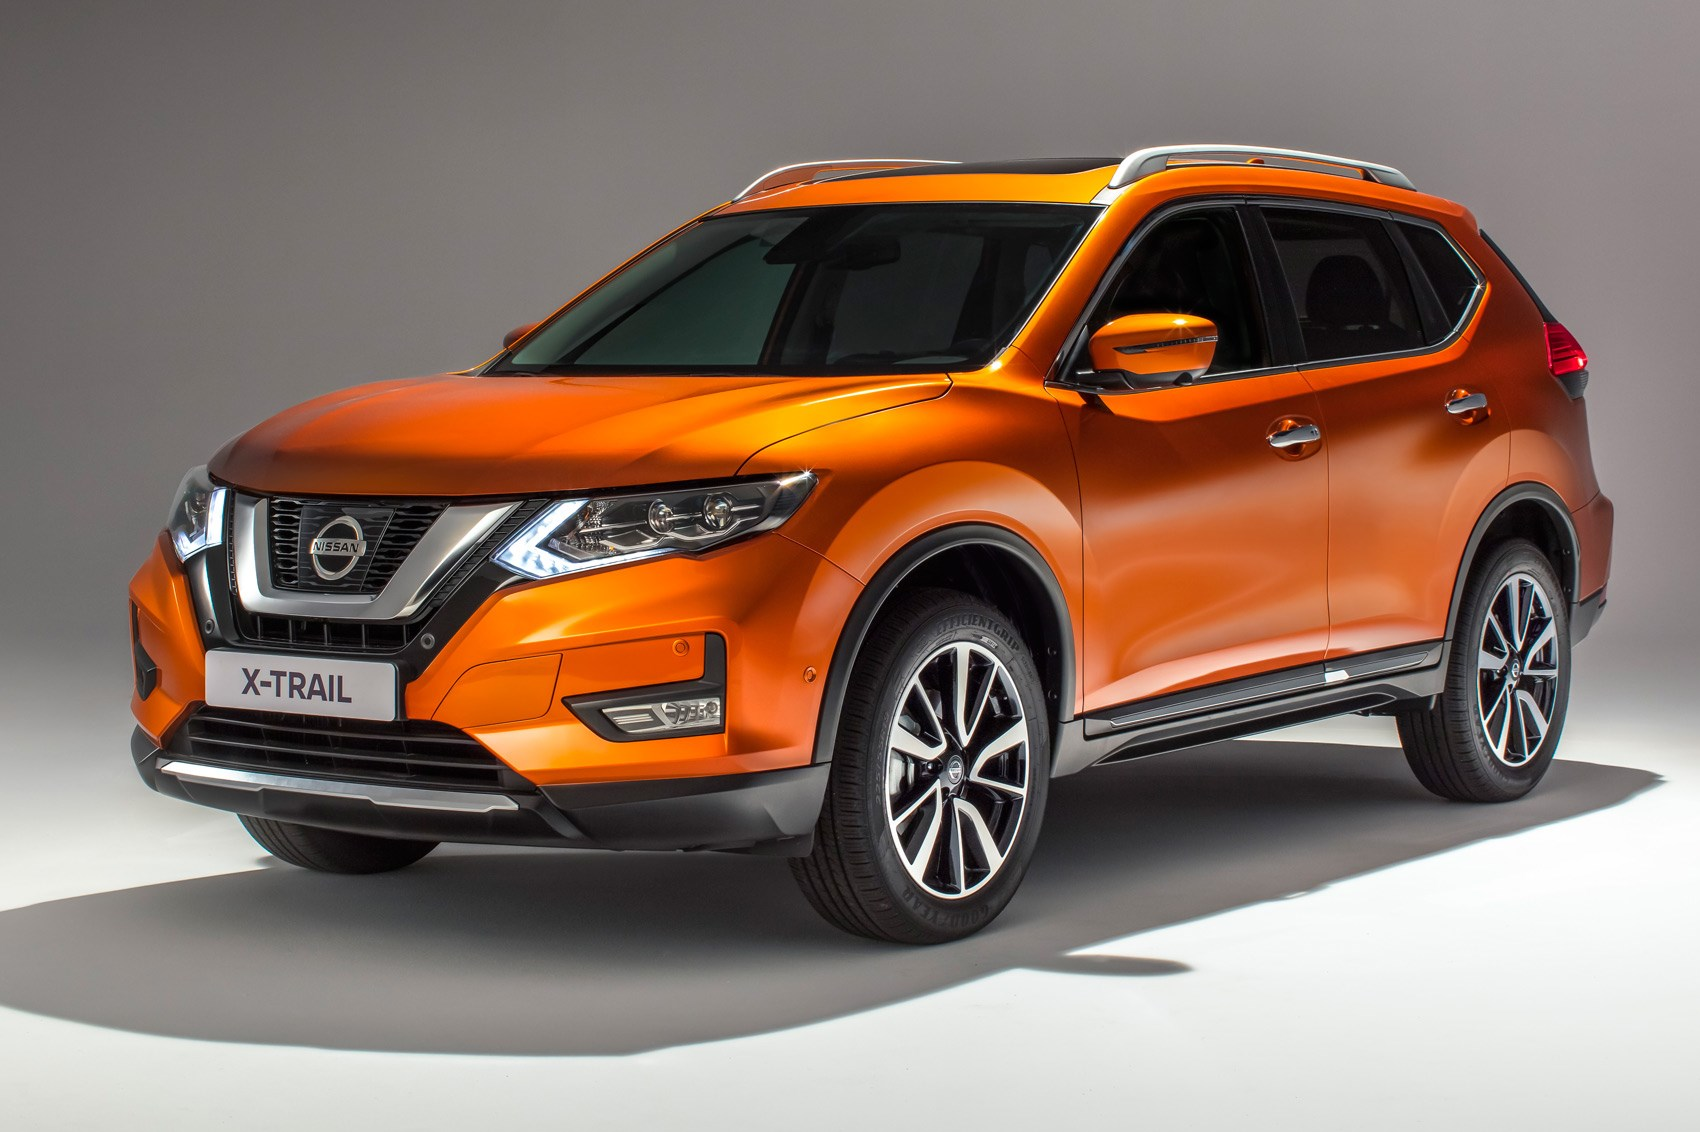 Image tags:nissan, x-trail, car, nissan, x- trail, suv, vehicles, machine